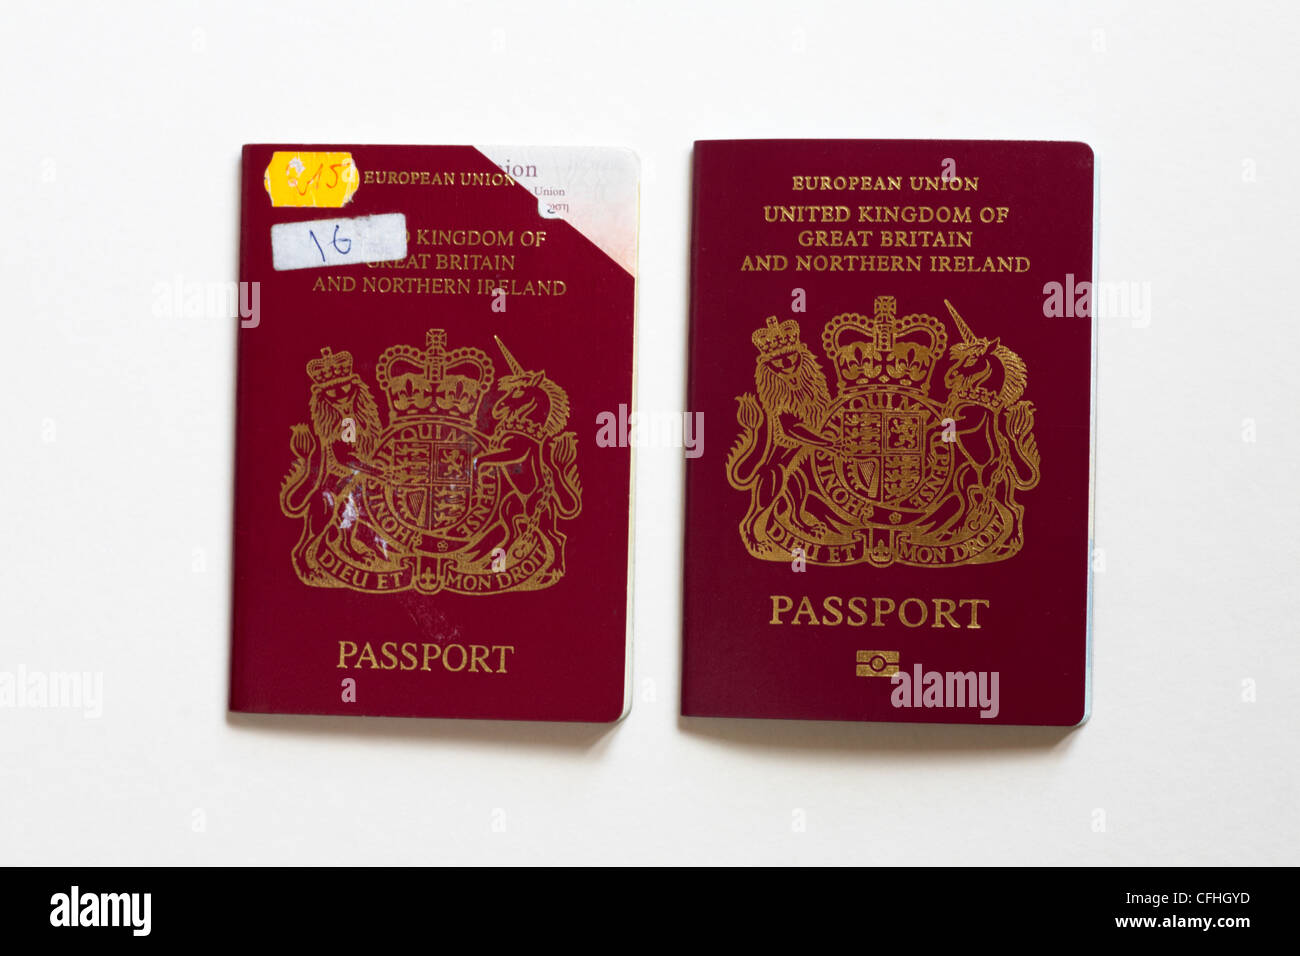 Expired Passport With Corner Cut Off And Replacement Passport Isolated On White Background